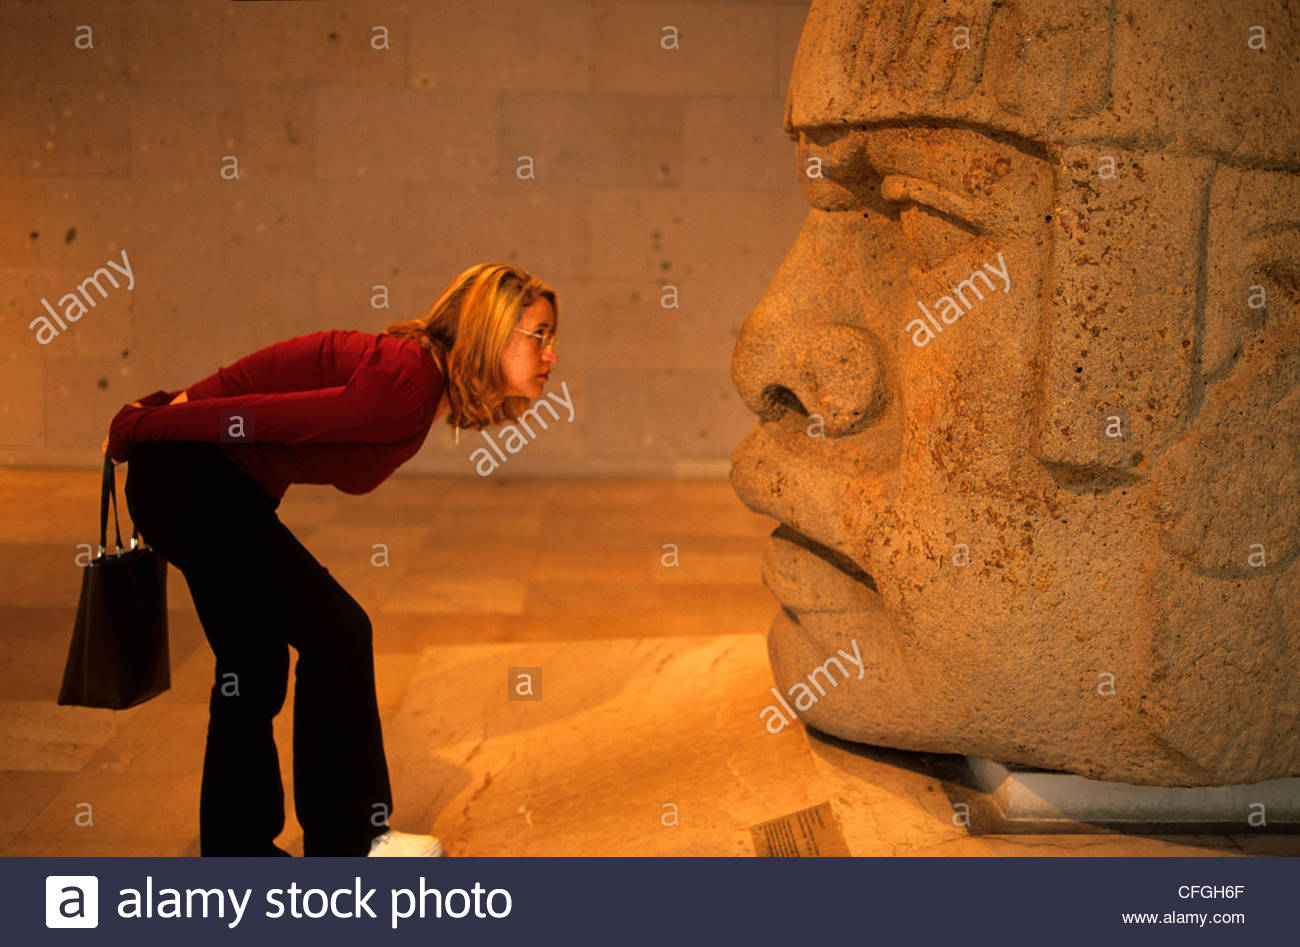 A woman examines an Olmec head in the Museum of Anthropology. - Stock Image